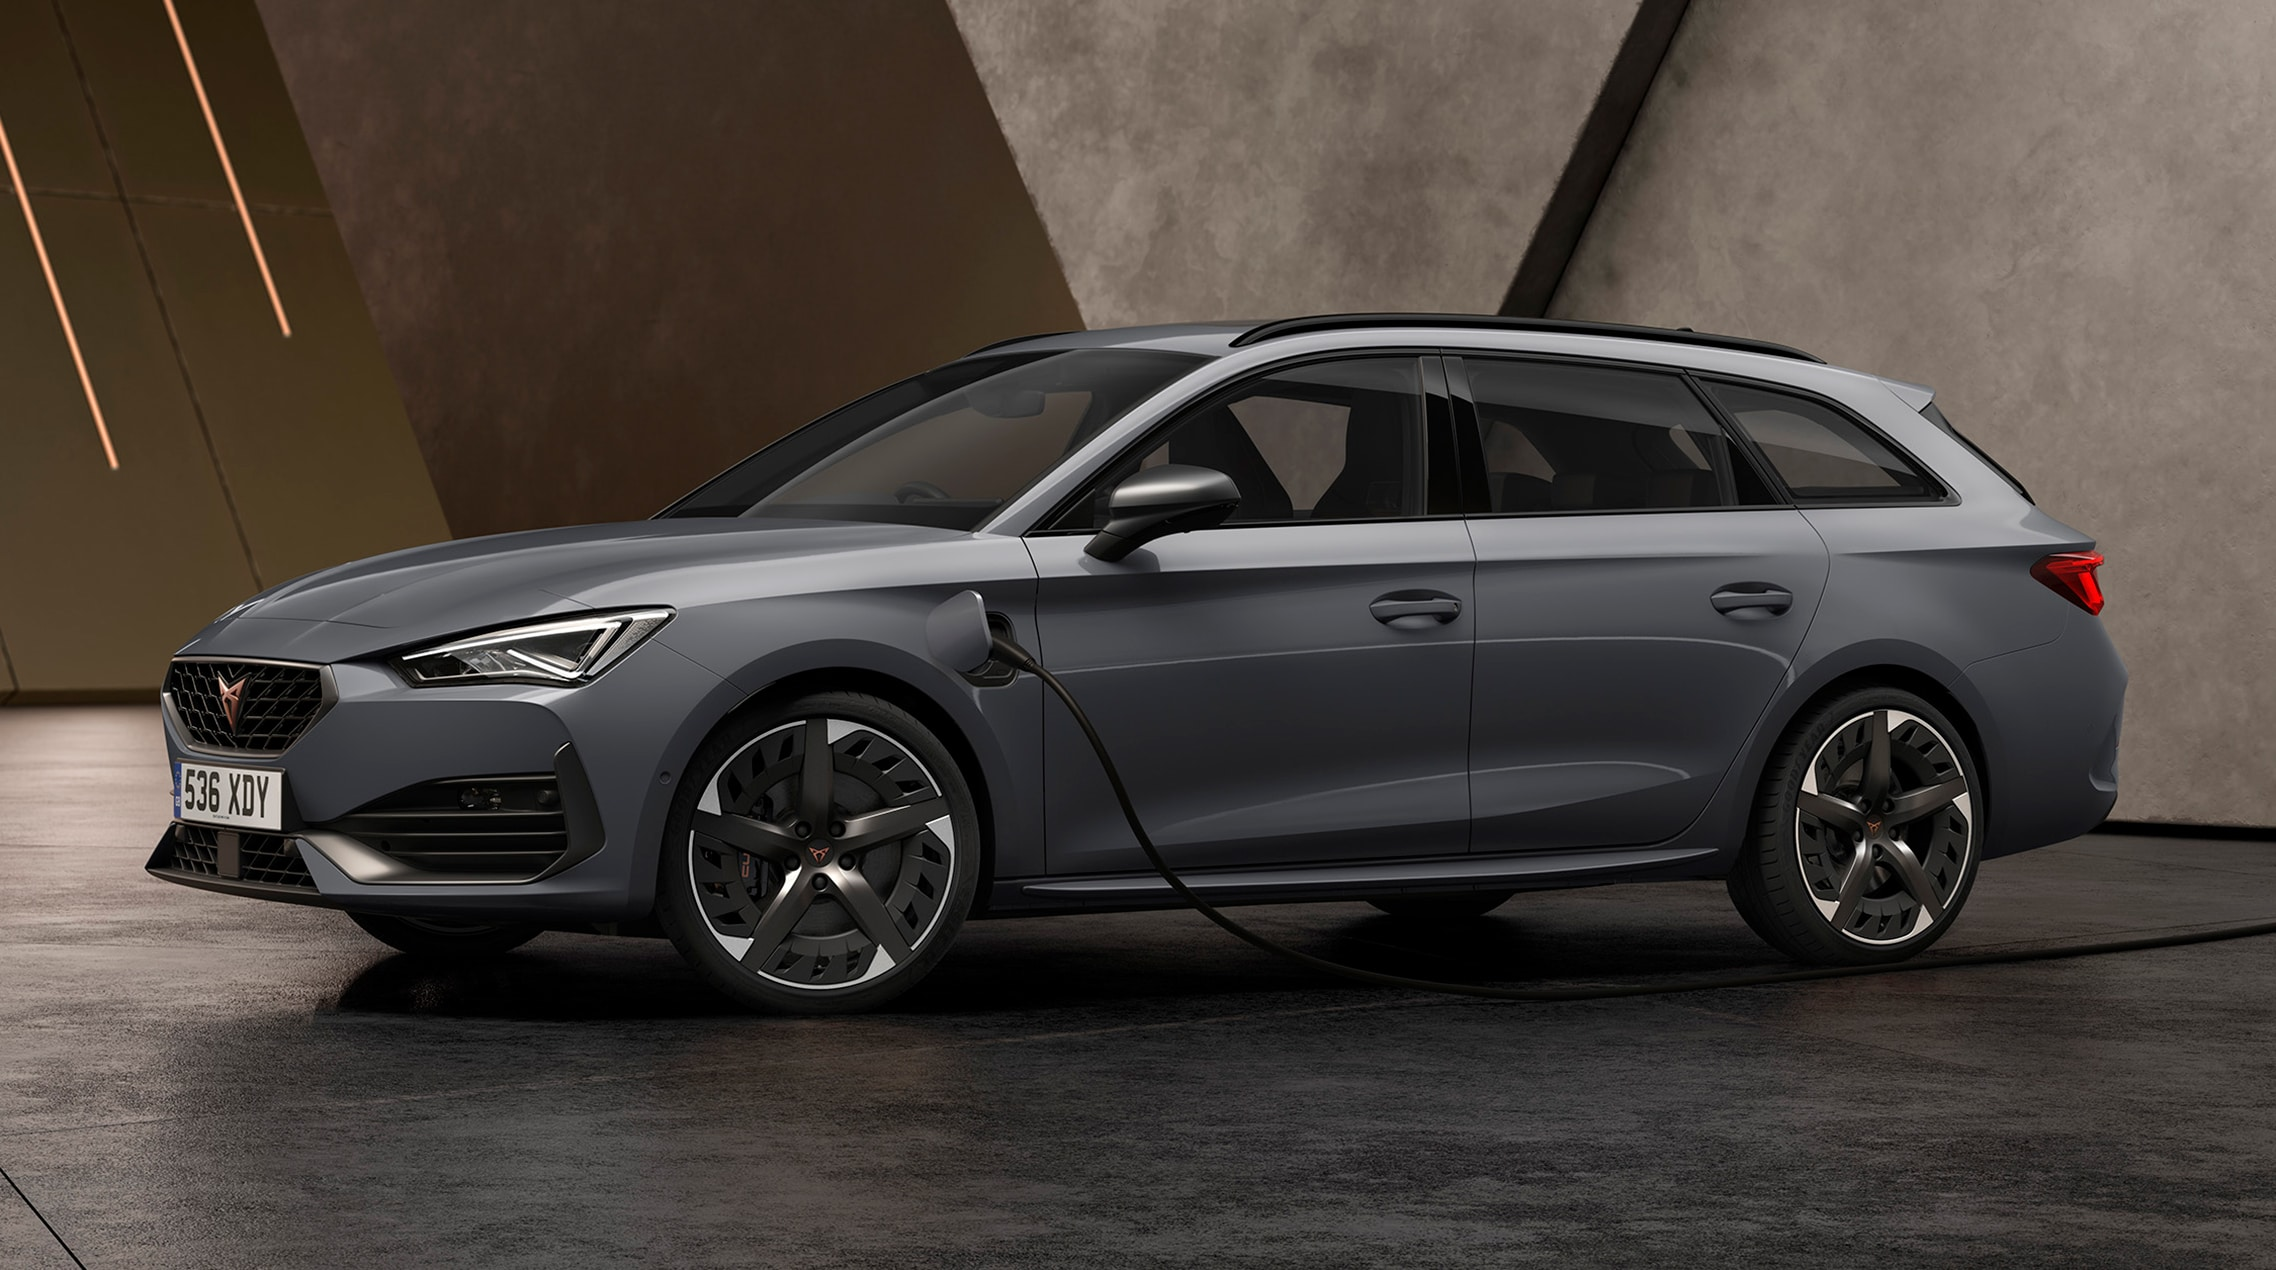 NEW CUPRA Leon Estate VZ2 1.4 TSI 245PS (180kW) e-HYBRID